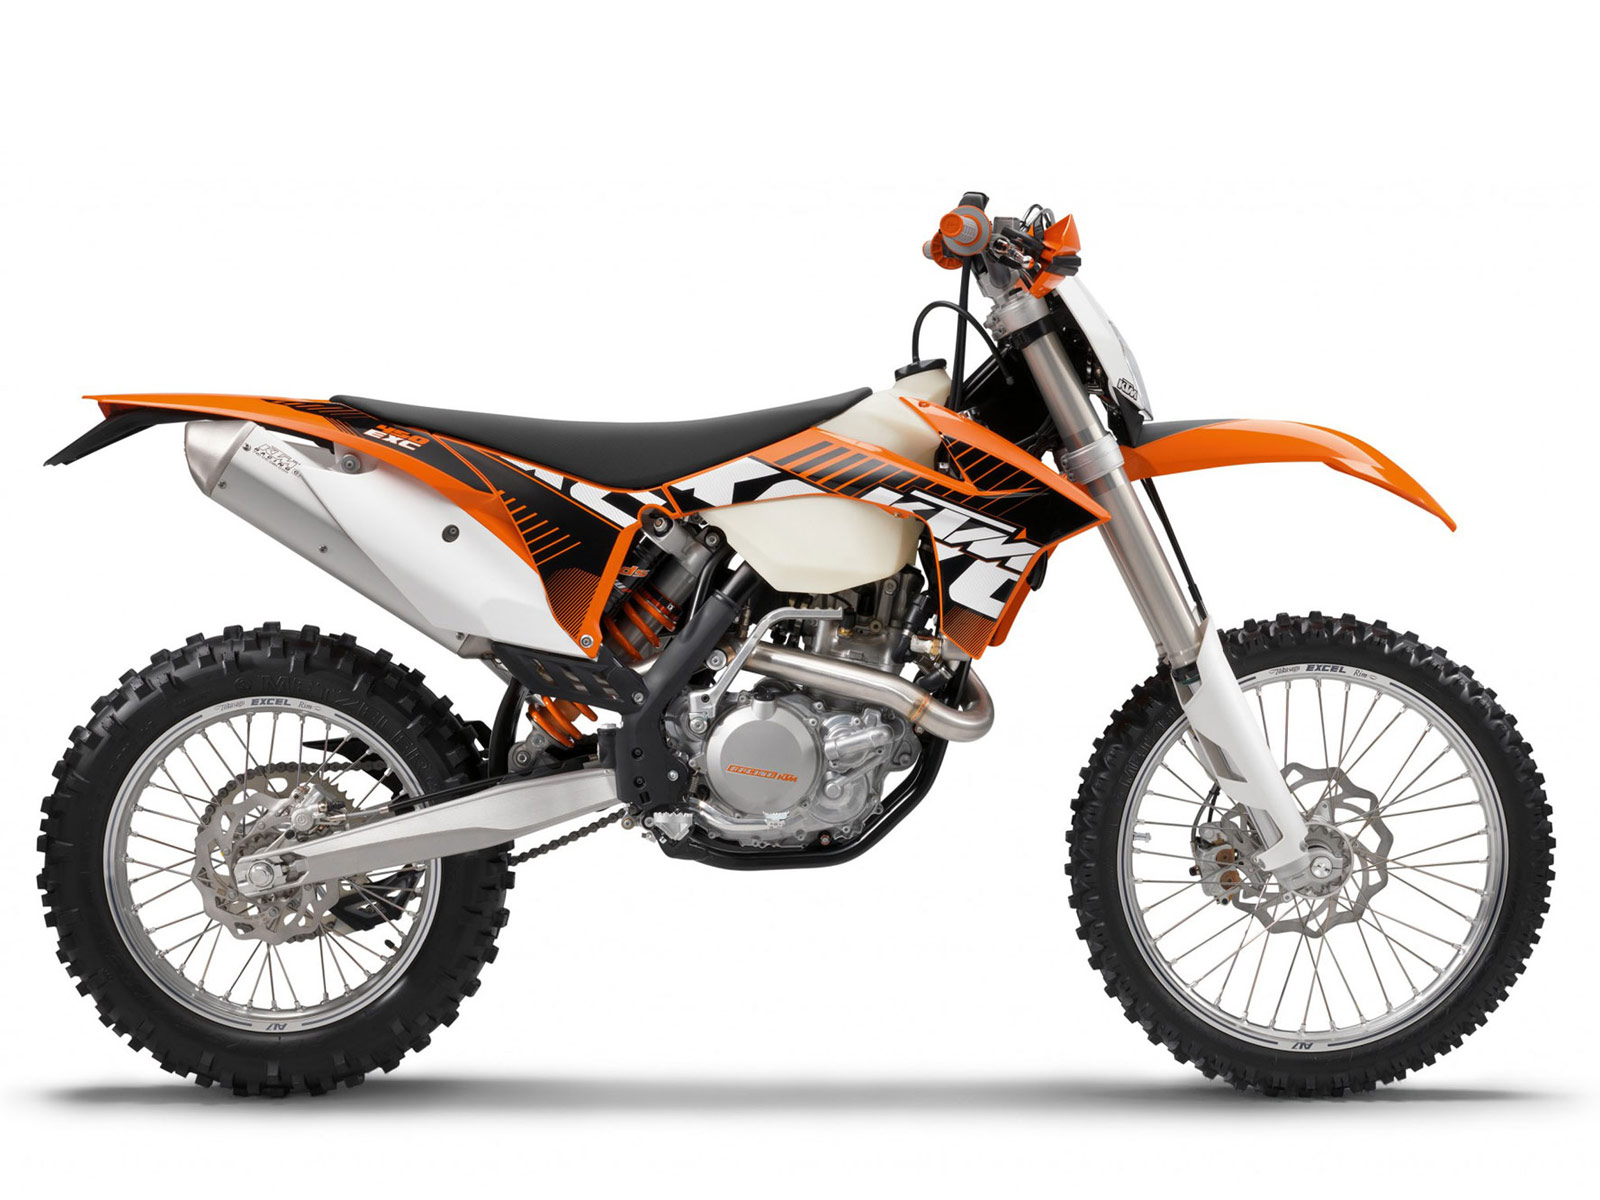 2012 ktm 450 exc motorcycle review wallpapers. Black Bedroom Furniture Sets. Home Design Ideas